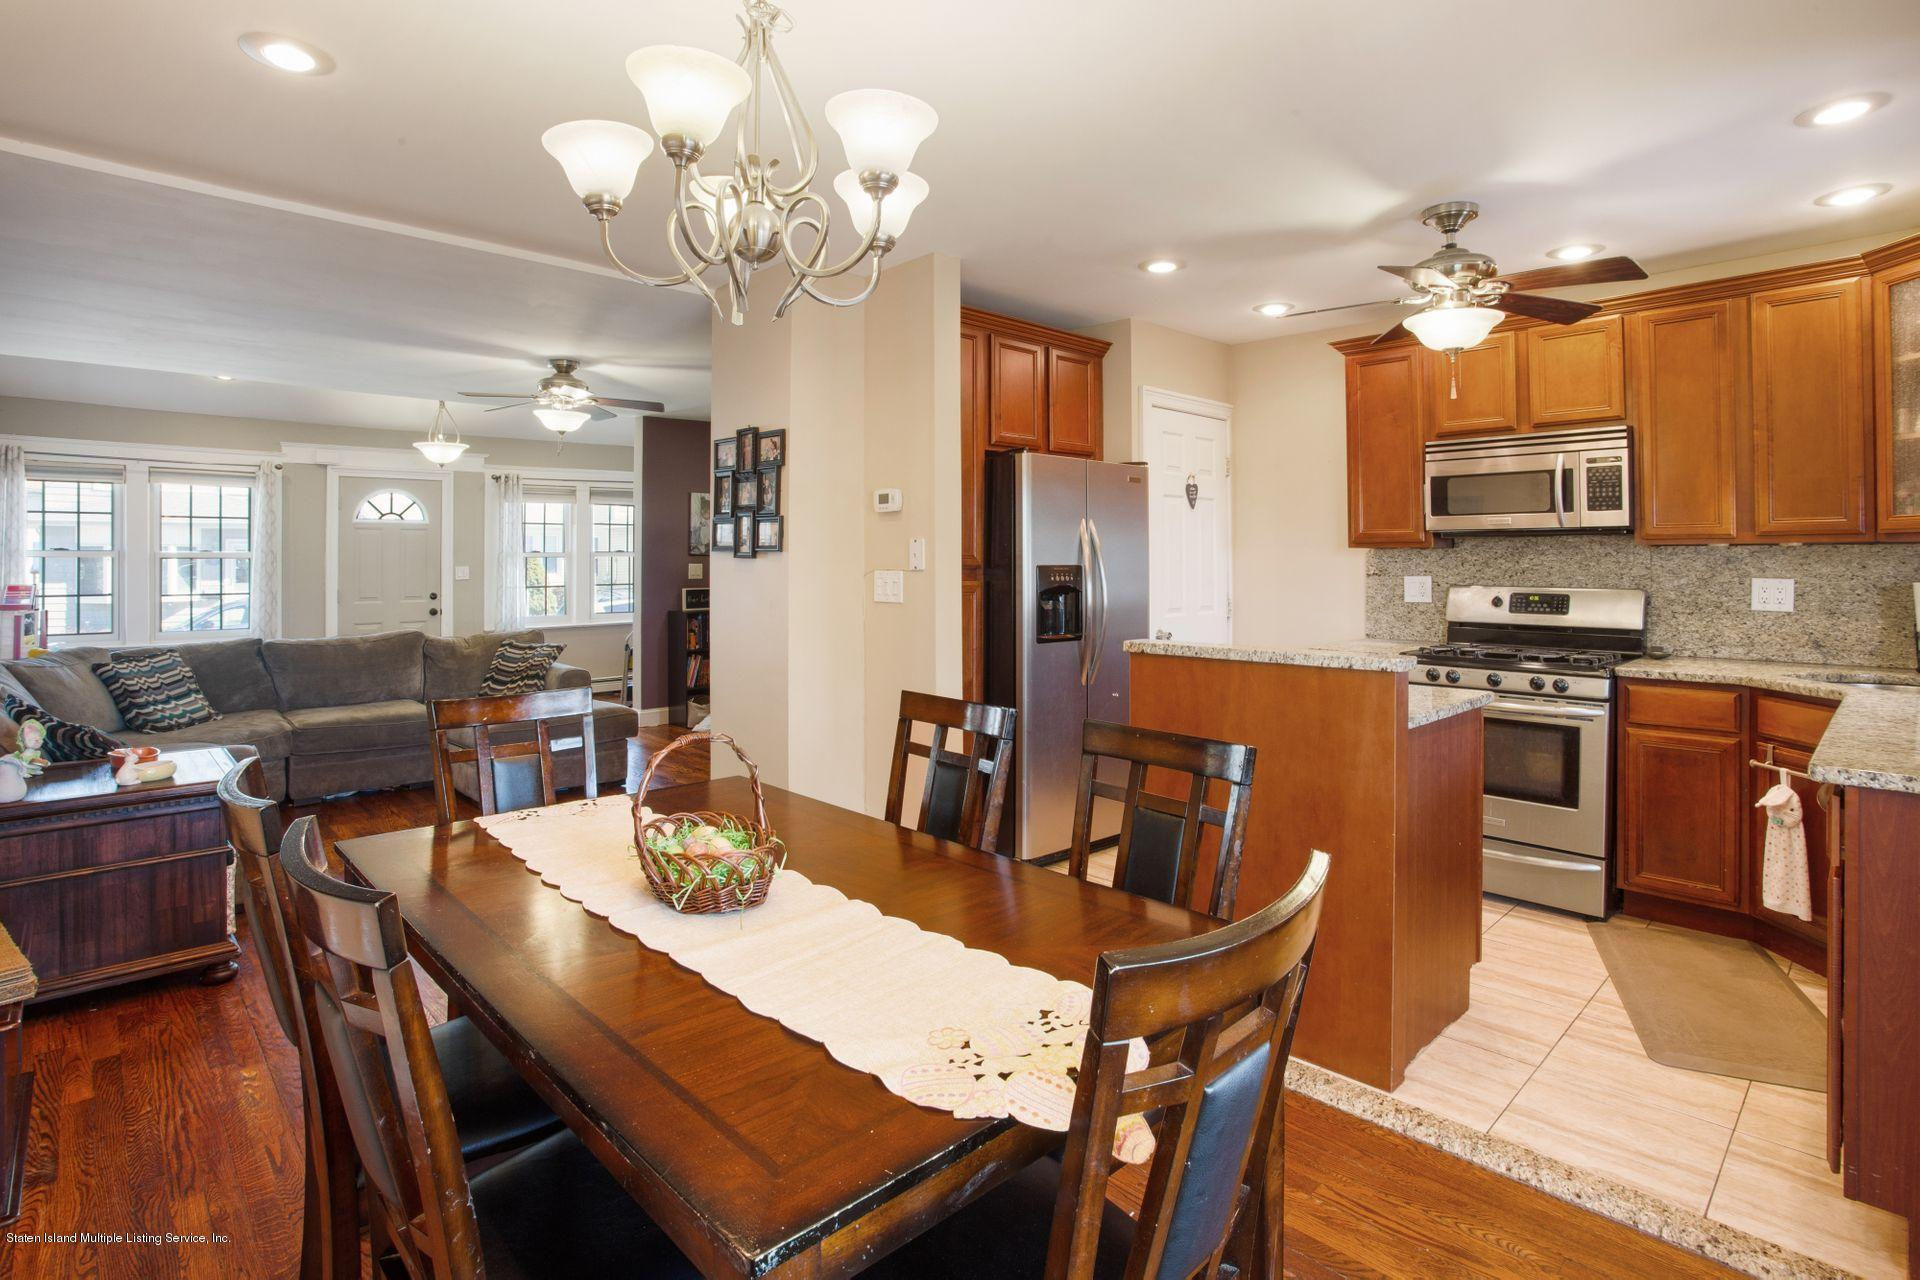 Single Family - Detached 252 Waters Avenue  Staten Island, NY 10314, MLS-1128050-9